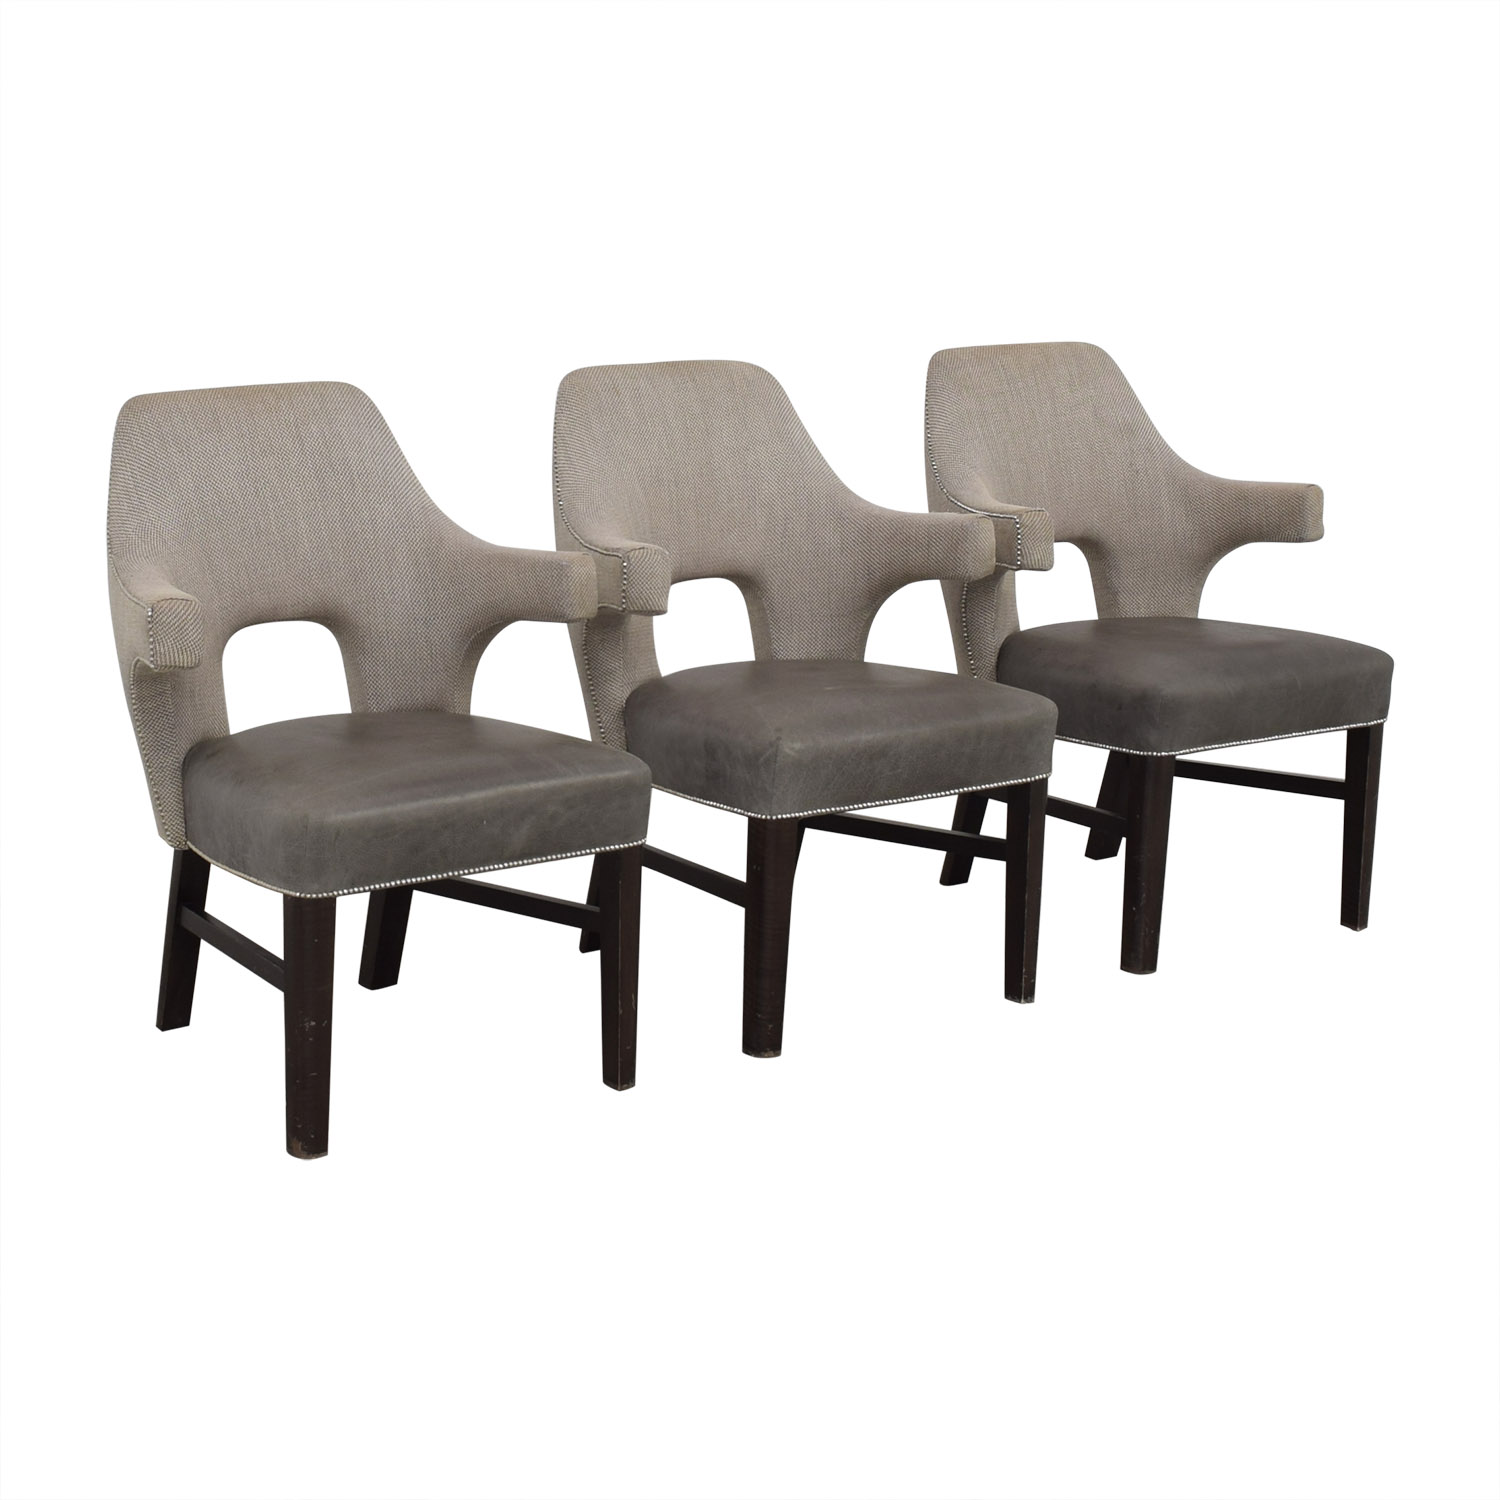 Thom Filicia Thom Filicia Modern Dining Chairs Chairs